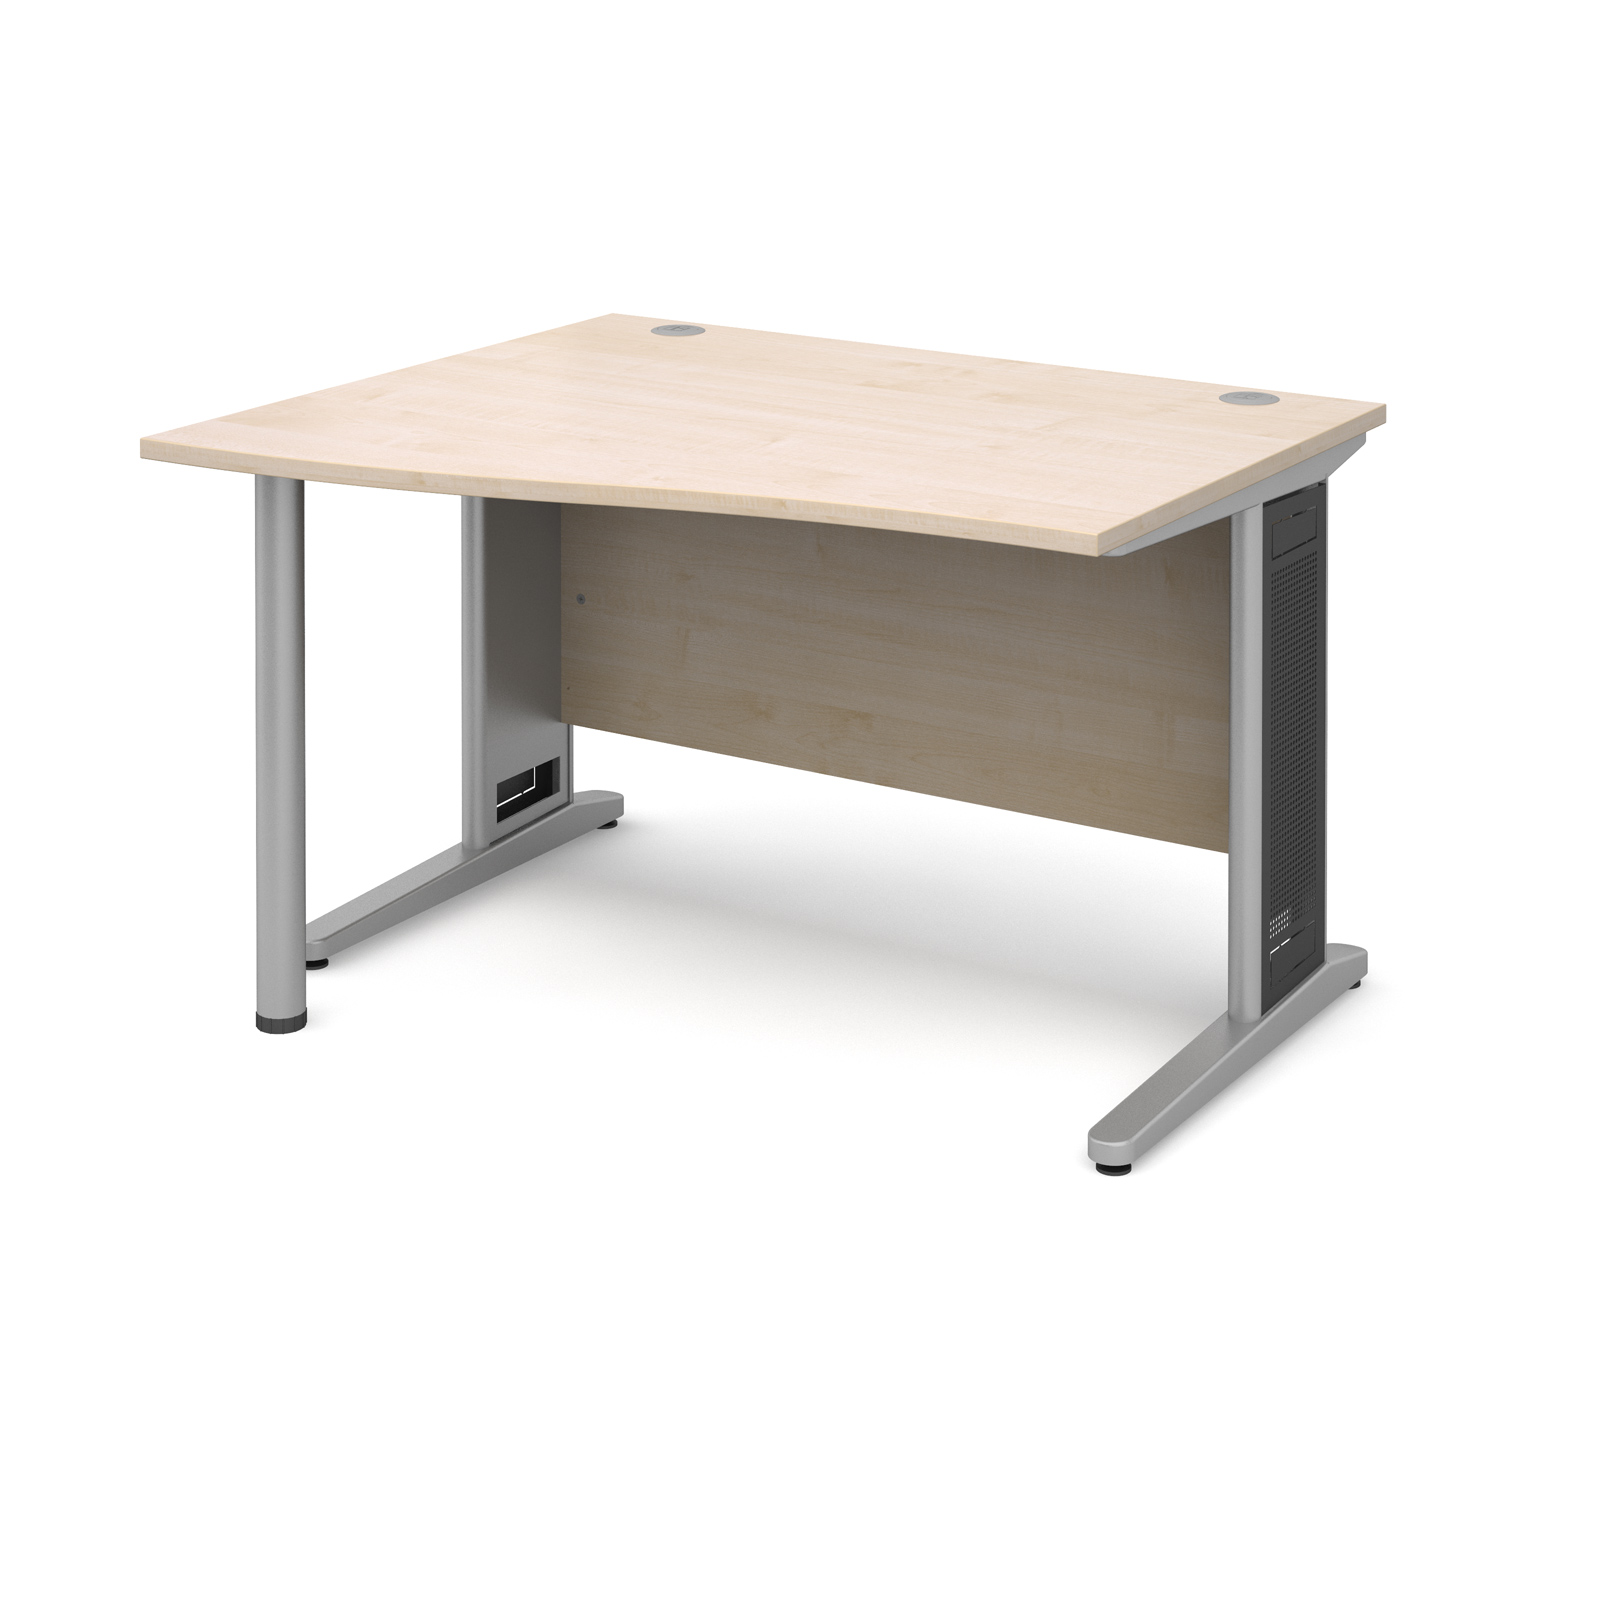 Largo left hand wave desk 1200mm - silver cantilever frame with removable grill, maple top